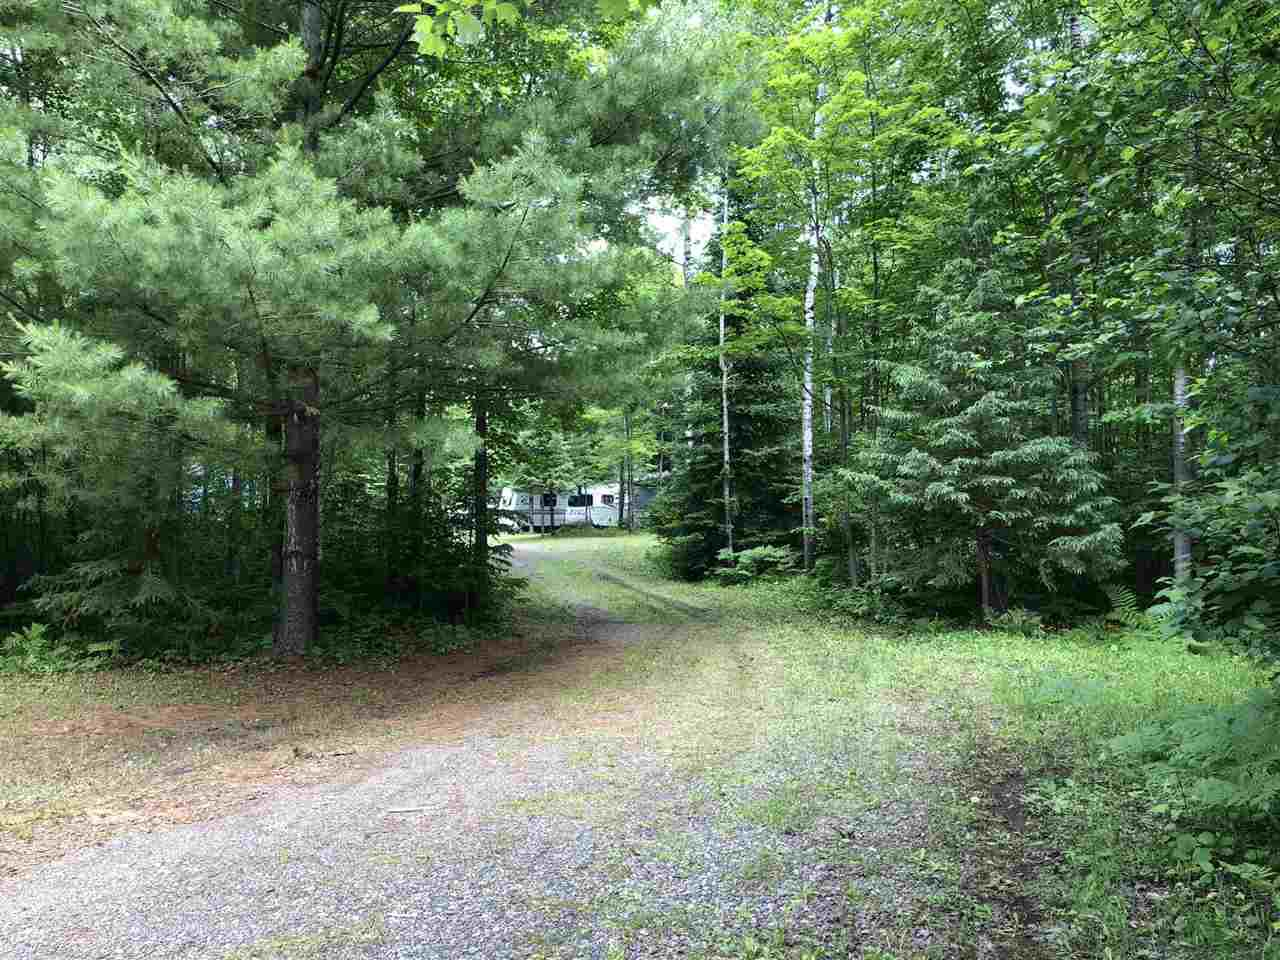 Motivated Seller!! Great turn-key opportunity for an affordable Northwoods escape near the lake, adjoining public land, and on ATV trail! This buildable 4.97+/- acre site in Price County would be a great family getaway offering abundant nearby activities. The property has a 31' camper and motor home for bunking along with four extra newer buildings: 8x16 shed for storage; 10x20 shed for the toys; 16x24 screen house with wood stove & heater for a hangout or extra bunking; and a nice clean outhouse that will impress with 1000-gal holding tank. Better yet, this site is equipped with drilled well and drinkable water per seller and is fully set up with solar power and generator! The great outdoors offers thousands of adjoining public acres in the Chequamegon National Forest, Sailor lake offers great fishing and a boat landing 1.5 miles away, and the ATV trail is at the end of the driveway! This site can be used year-round and snowmobile trail runs near the campground. Call for details or to take a look!